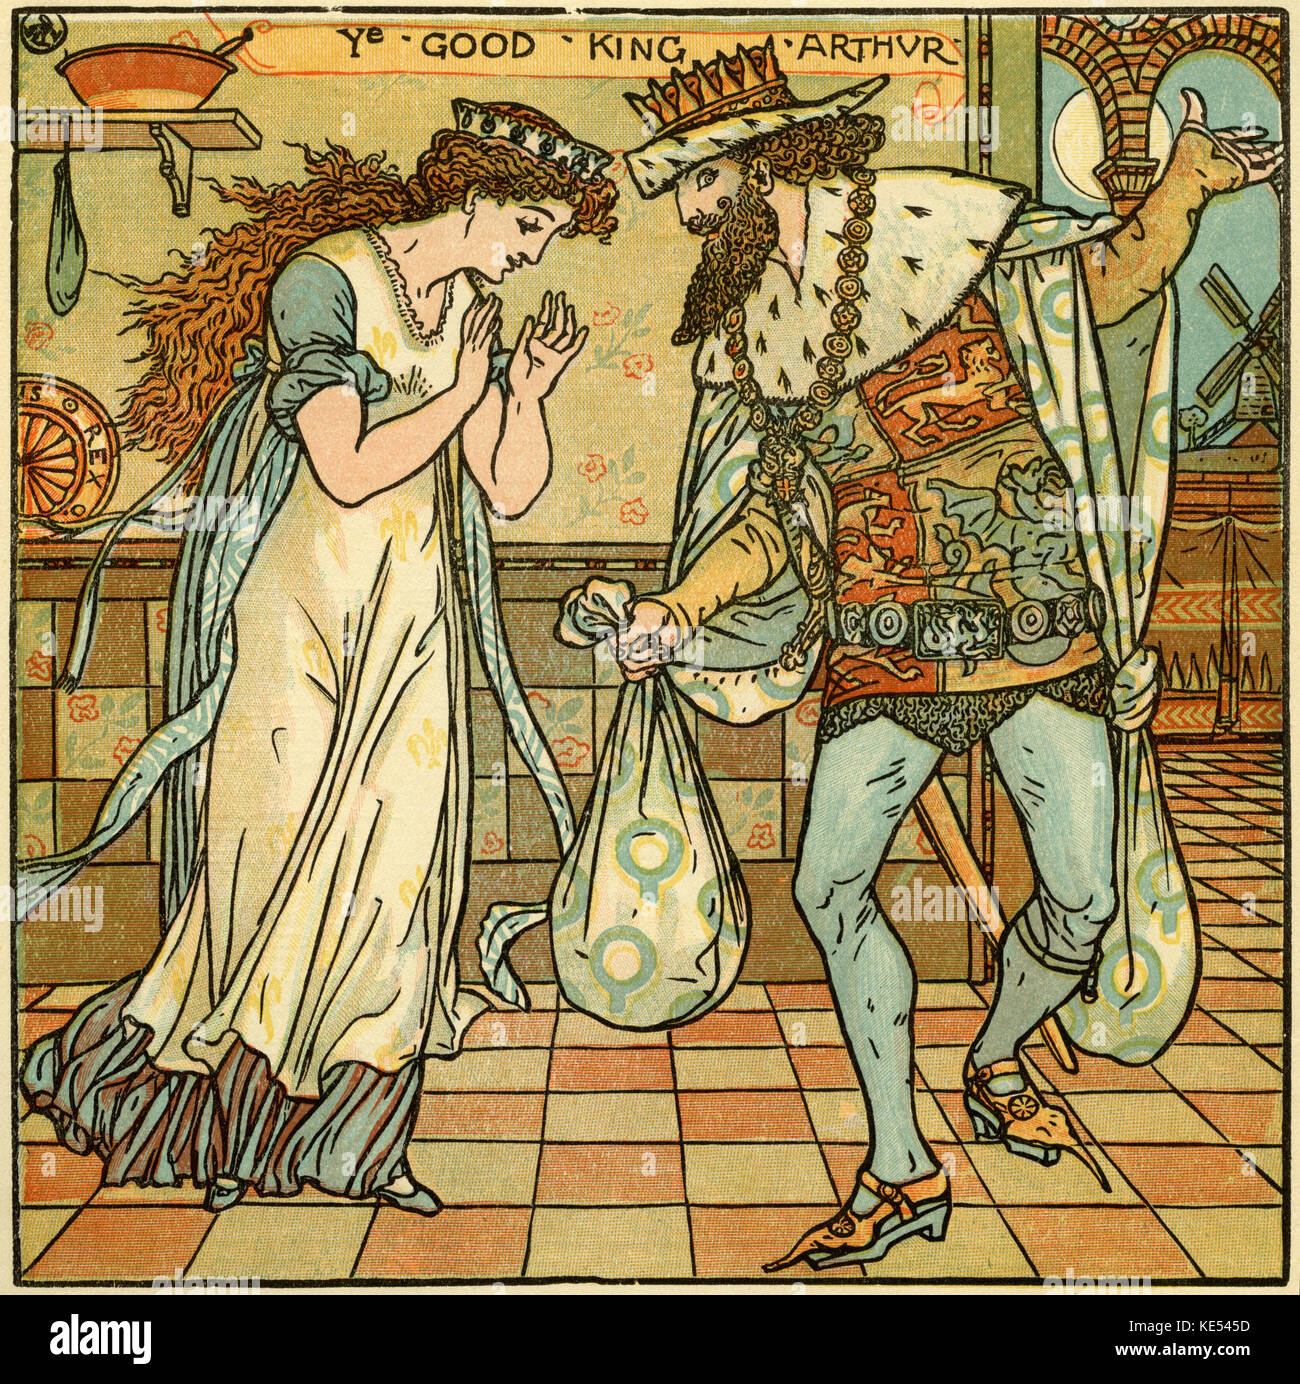 Good King Arthur,(When Good King Arthur ruled this land,)  nursery rhyme, illustration (1877) by Walter Crane. English - Stock Image